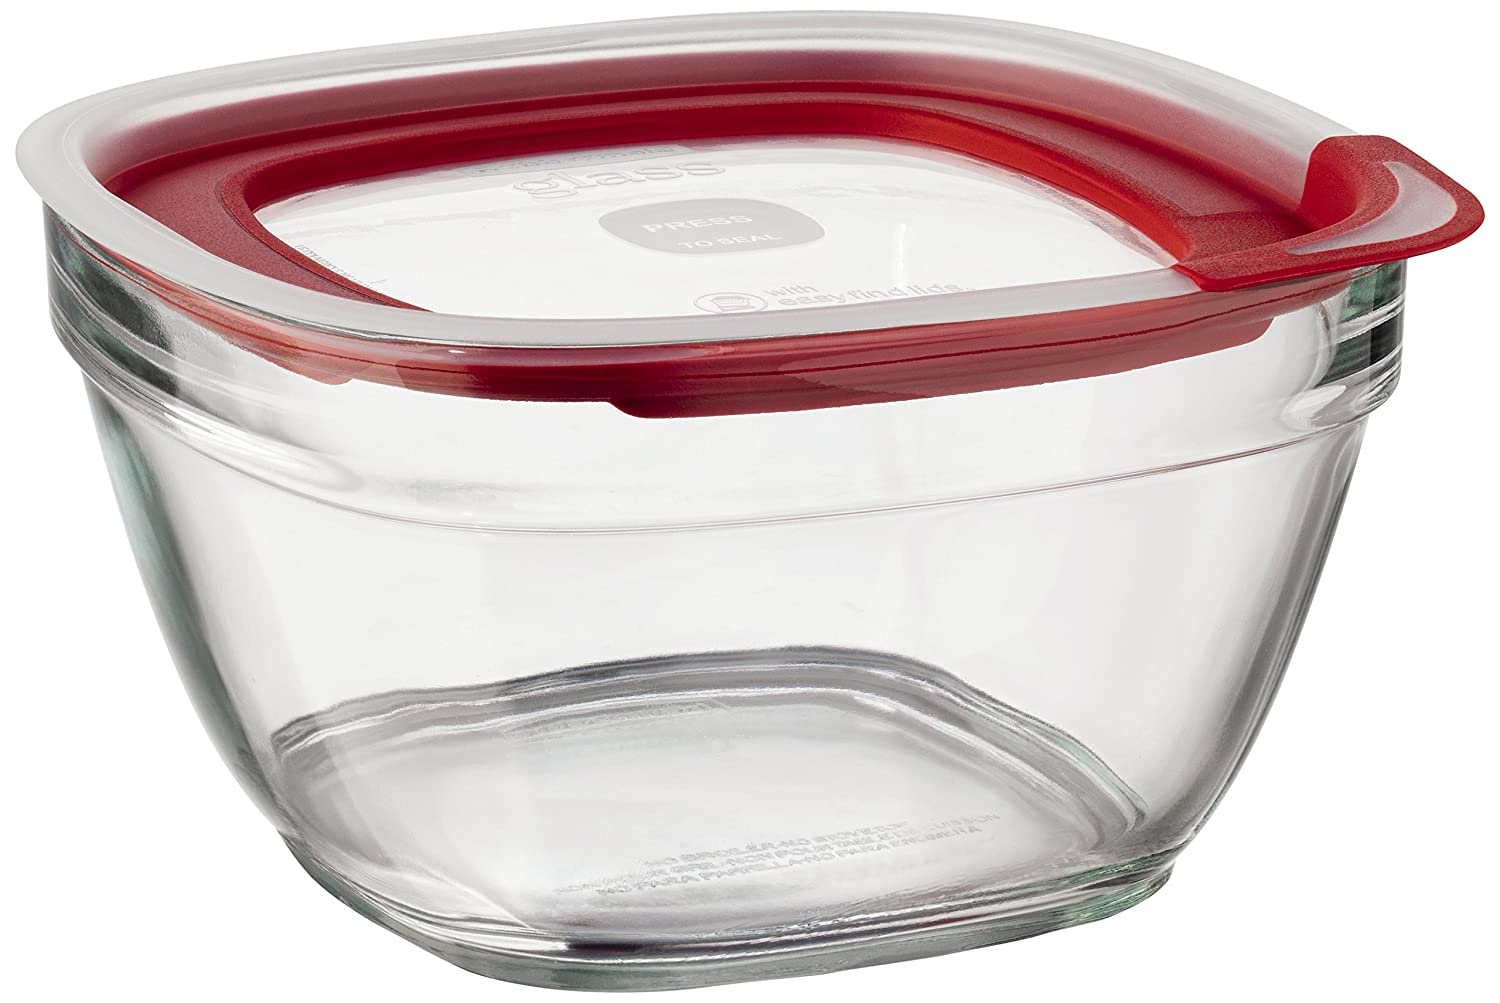 Amazon.com: Rubbermaid 10y0 11.5-cup fácil de encontrar por ...